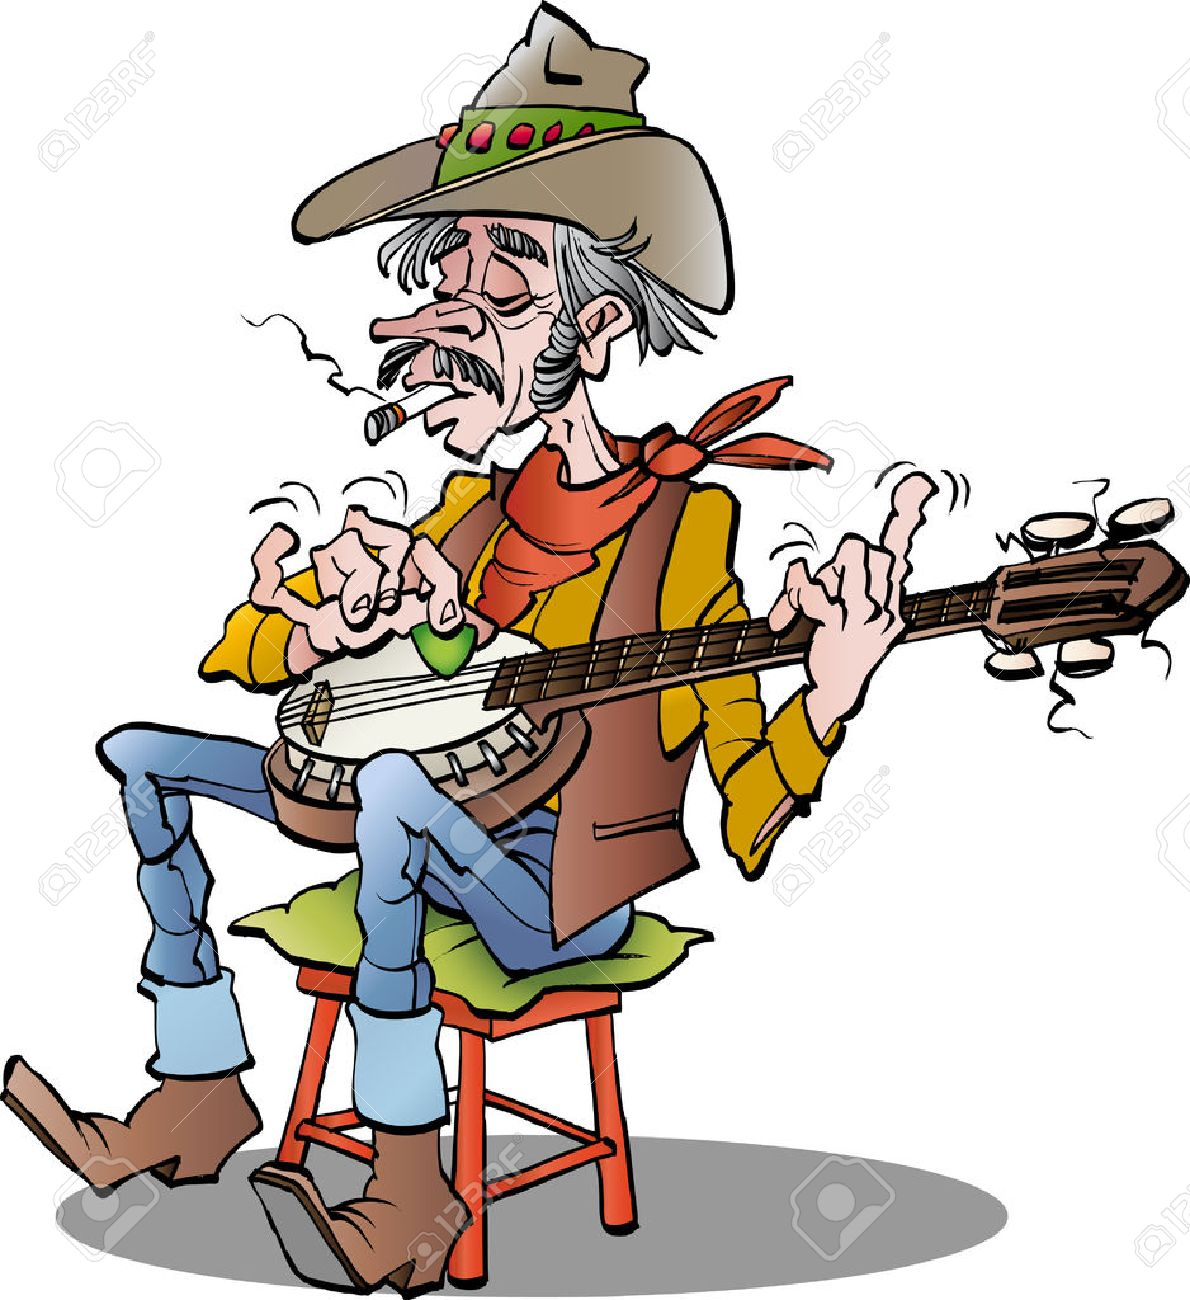 cartoon illustration of a country banjo player.